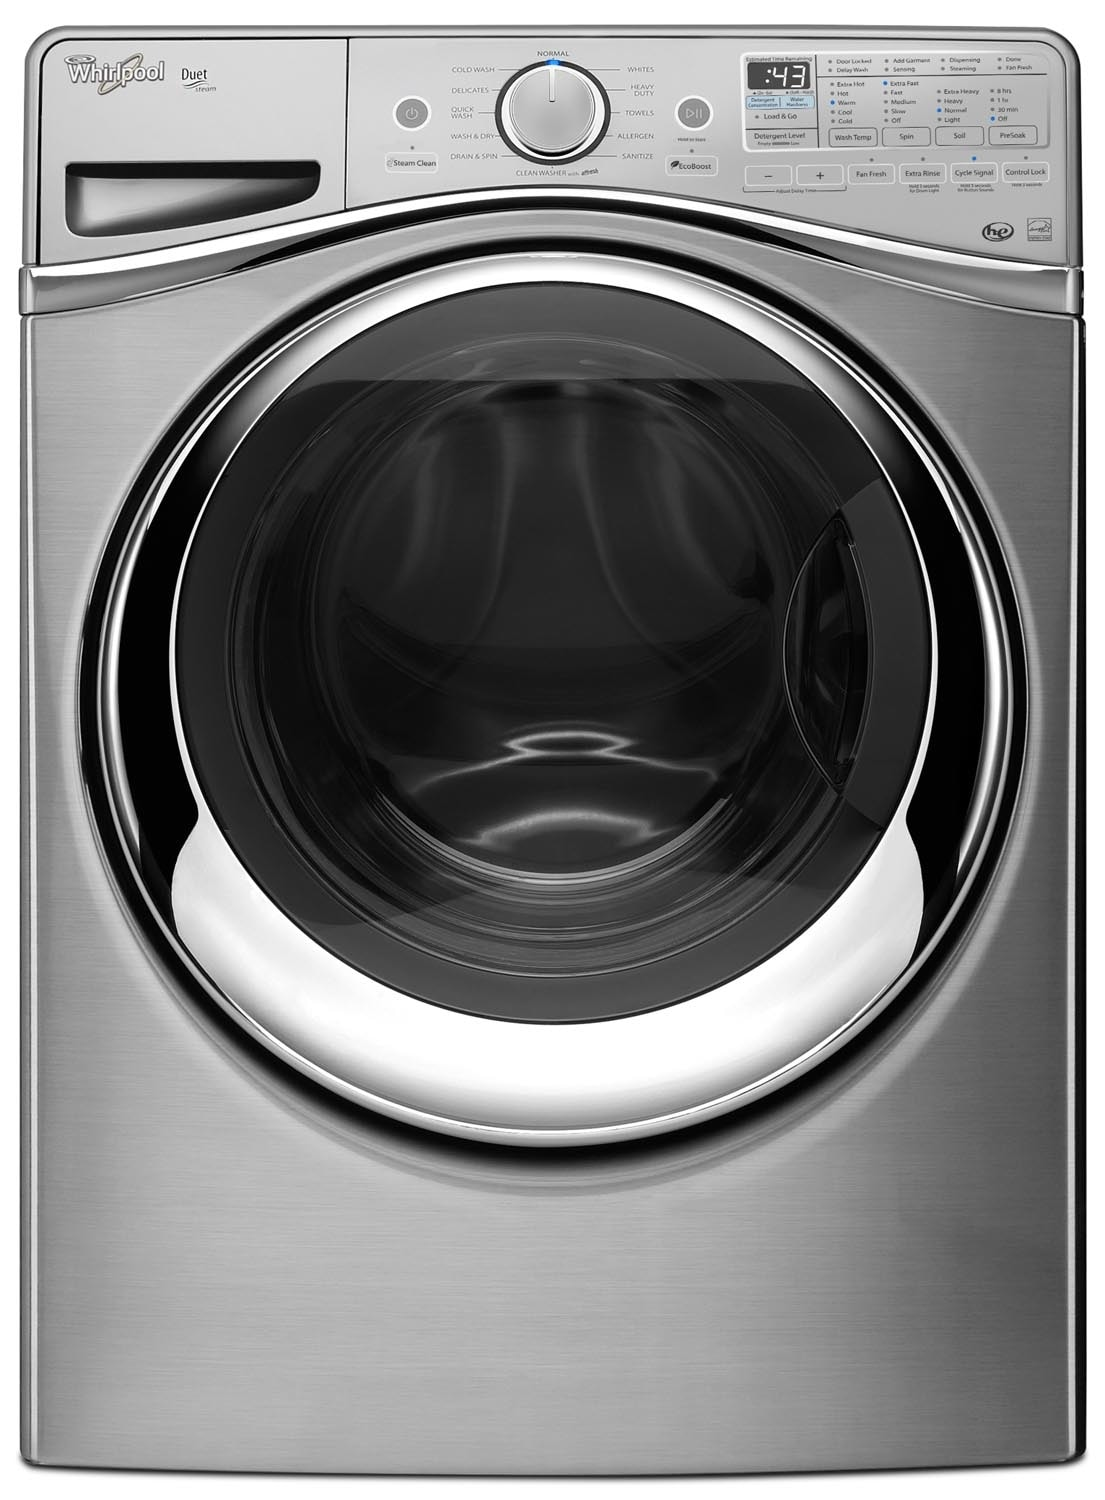 Whirlpool Diamond Steel Front-Load Washer (5.2 Cu. Ft. IEC) - WFW97HEDU